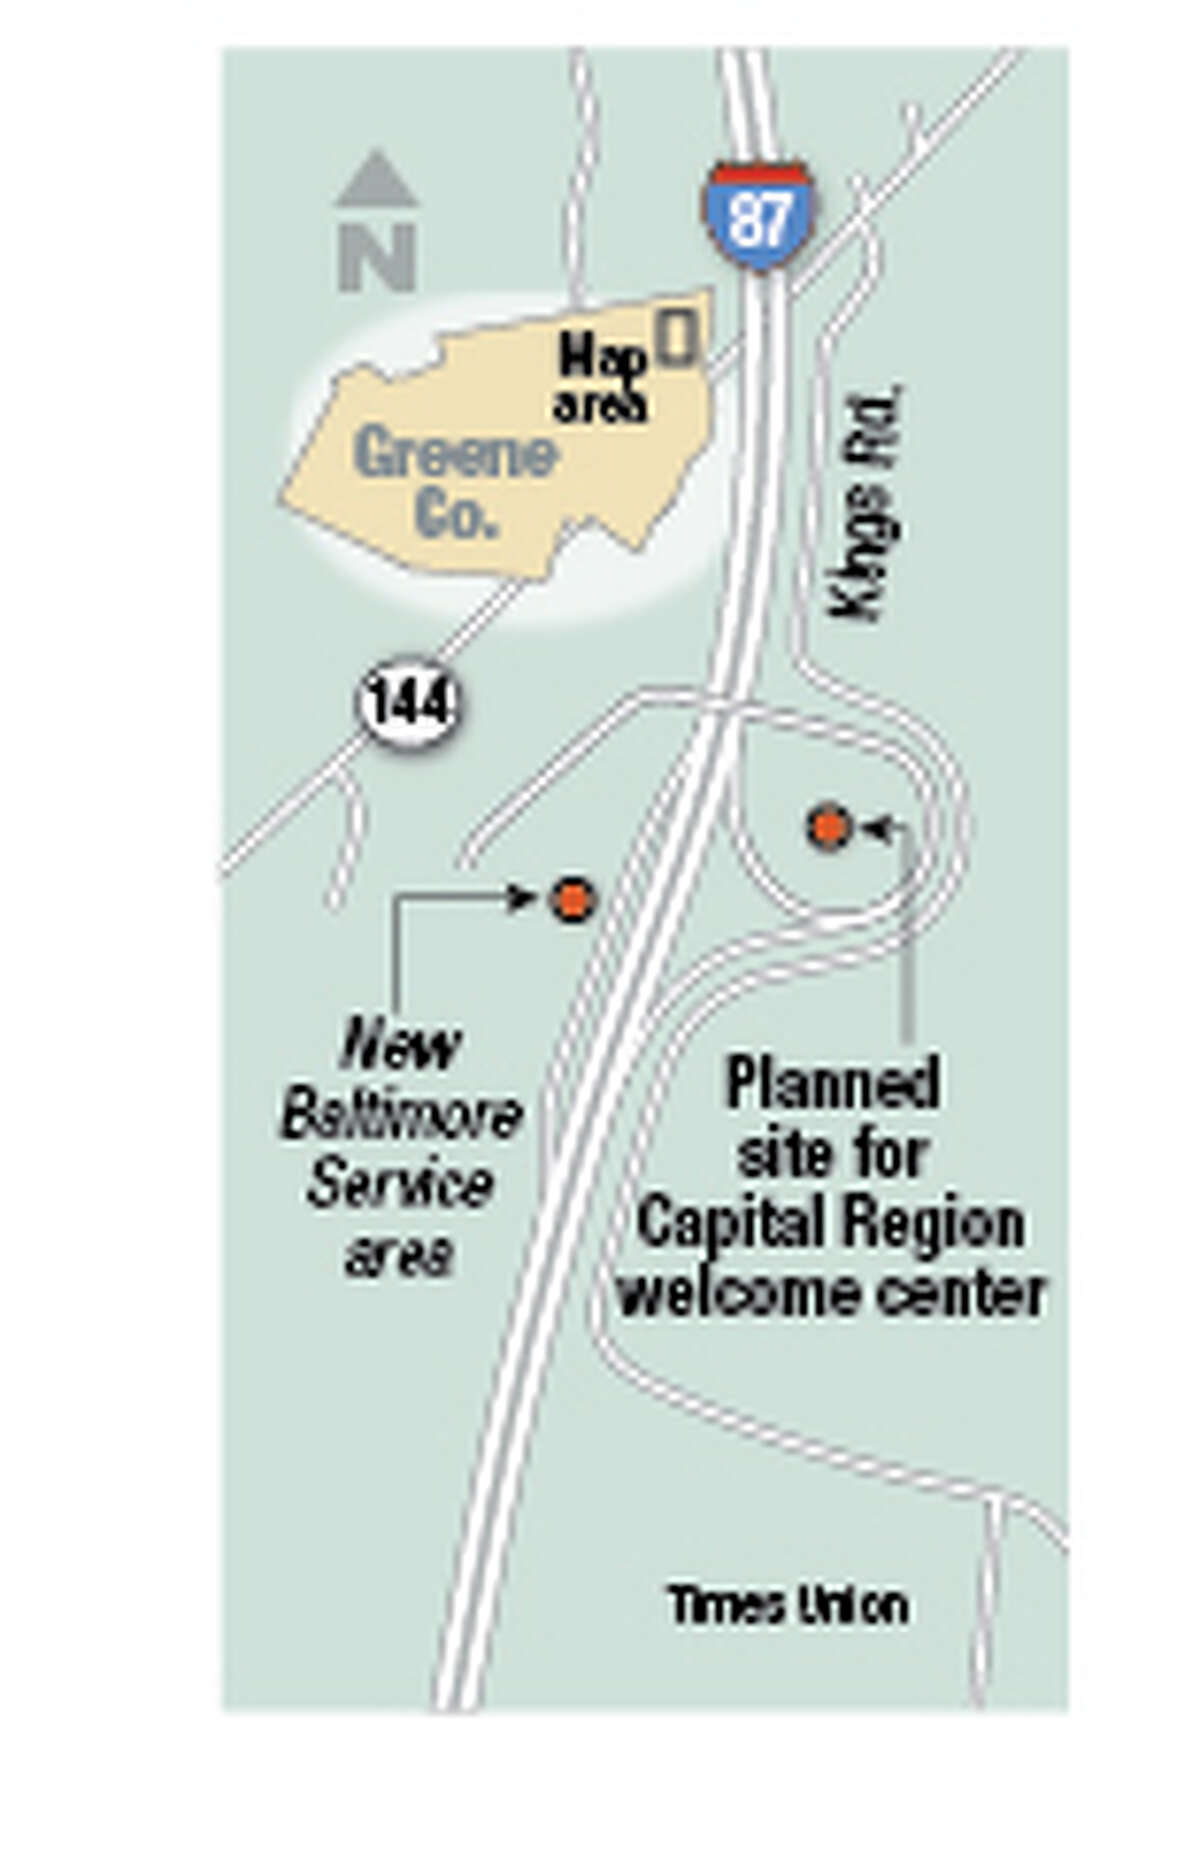 Gov. Andrew Cuomo?s plans for a network of centers along highways to promote New York products is now targeting the Capital Region, with plans for a facility along the state Thruway in Greene County. The Thruway Authority is seeking bids next month for construction of a 10,000-square-foot ?Capital Region welcome center? to be built inside the cloverleaf off the northbound exit leading to the existing New Baltimore travel plaza. (Jeff Boyer/Times Union)